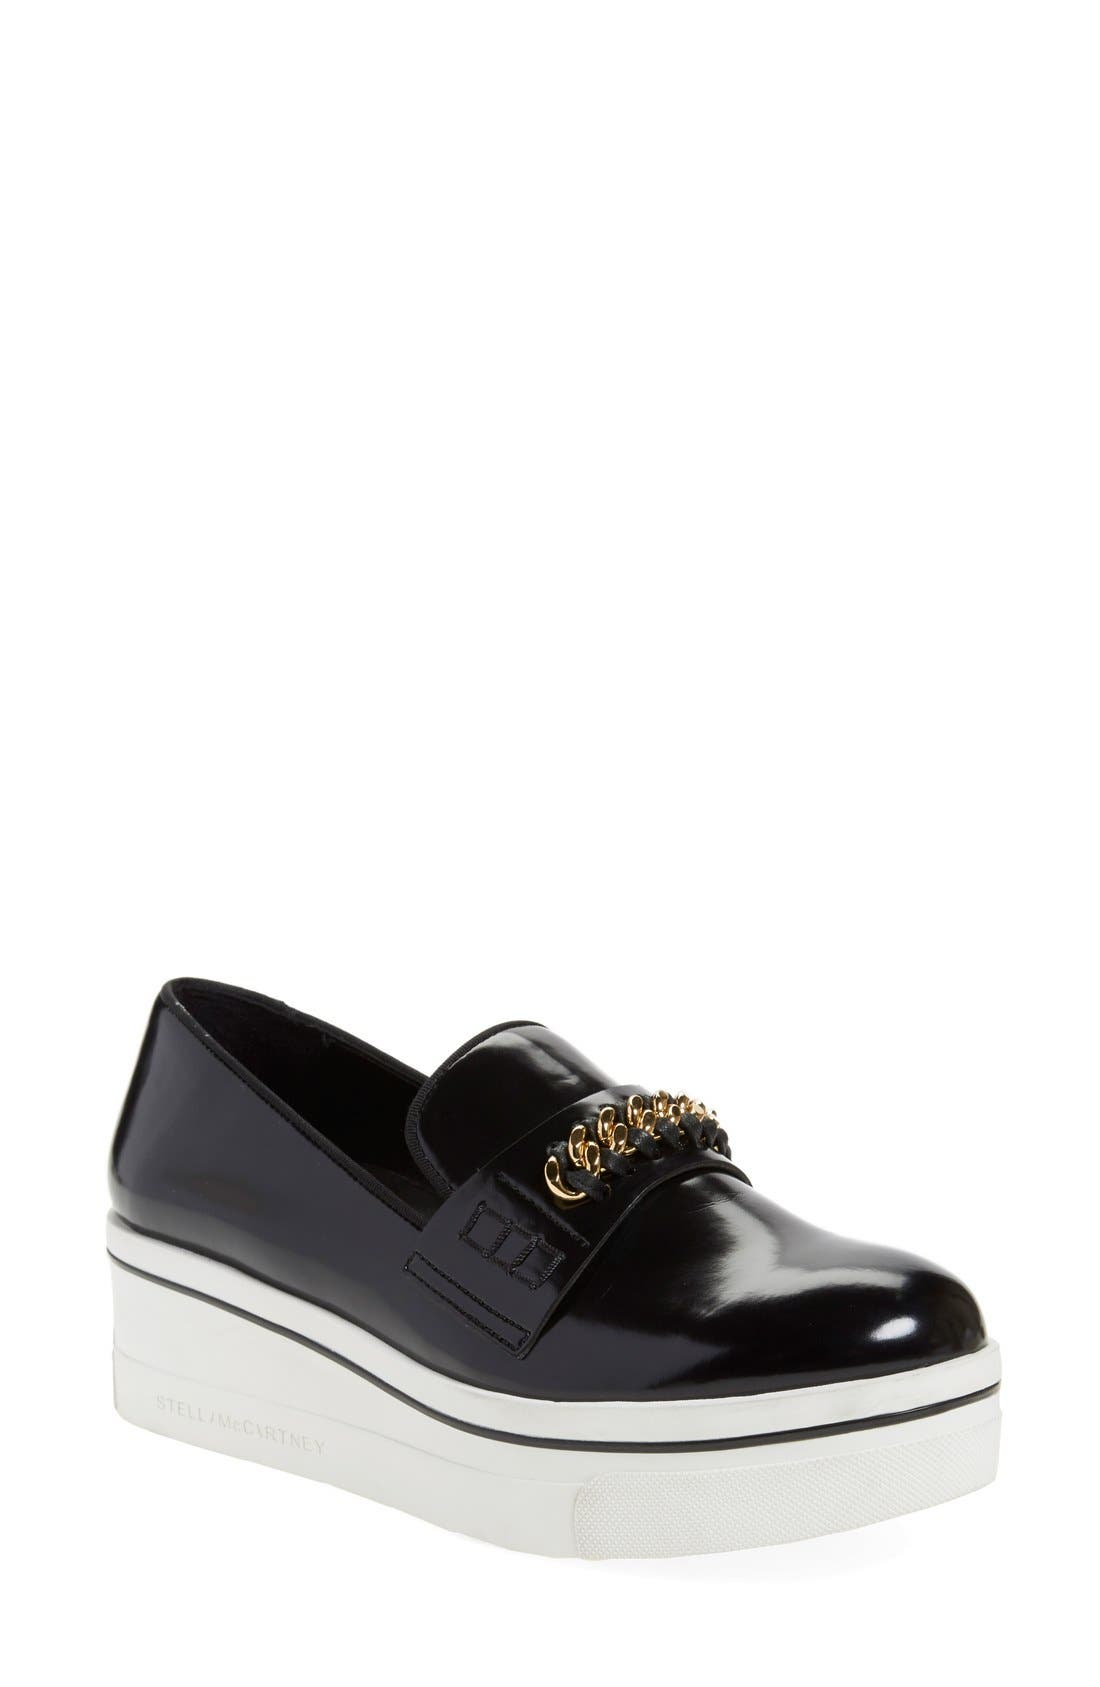 Stella McCartney 'Binx' Slip-On Platform Sneaker (Women)